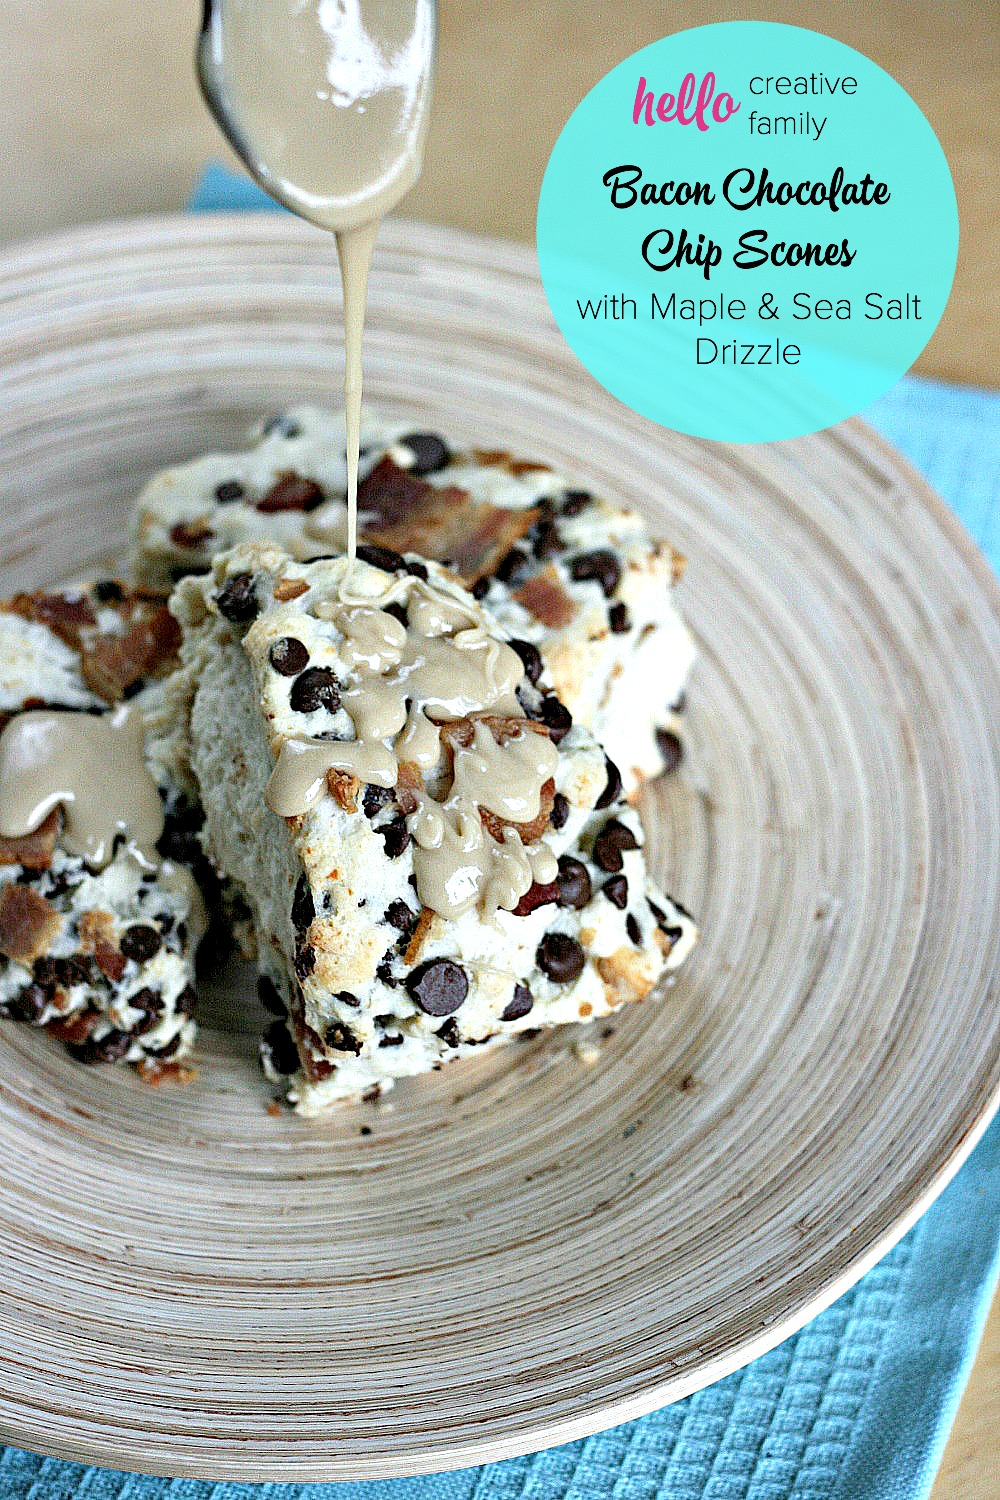 Drooling right now! Chocolate and Bacon? OMG good! I can't think of any guy who wouldn't love these for brunch or dessert for a special occasion! Bacon Chocolate Chip Scones with Maple and Sea Salt Drizzle Recipe.